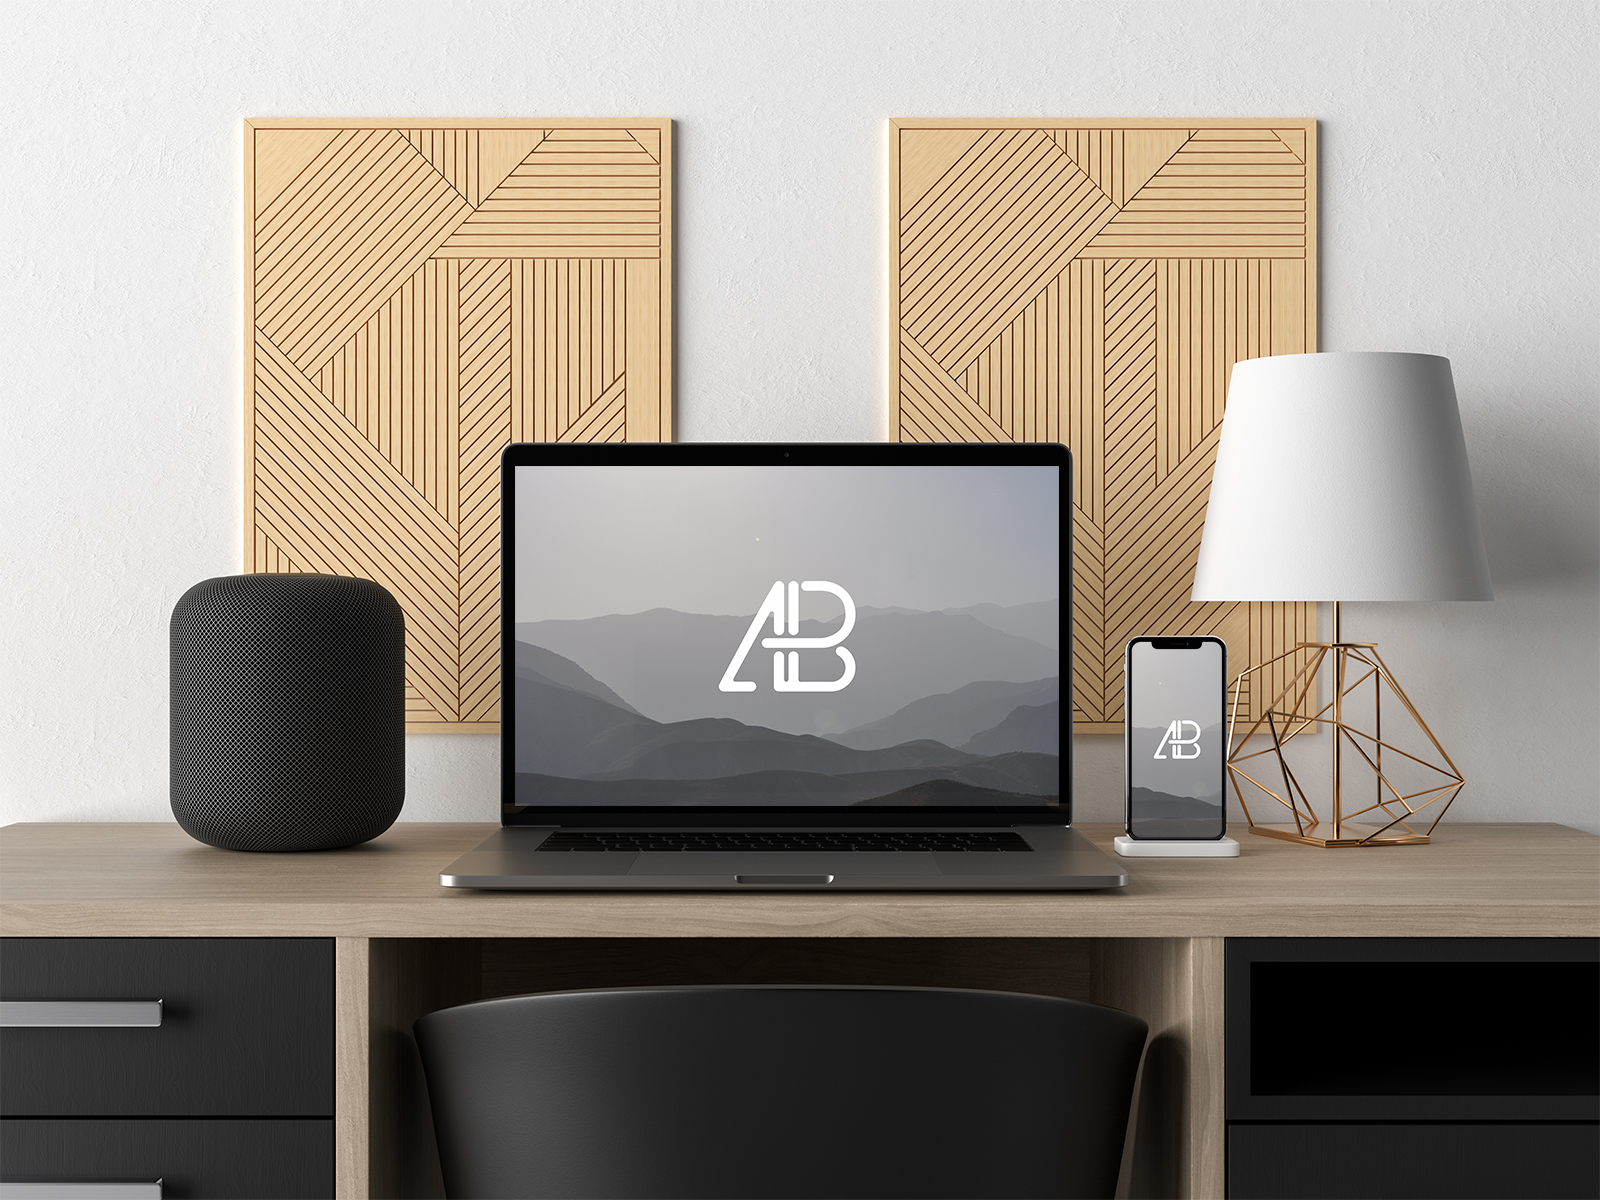 Macbook And iPhone On Desk Mockup